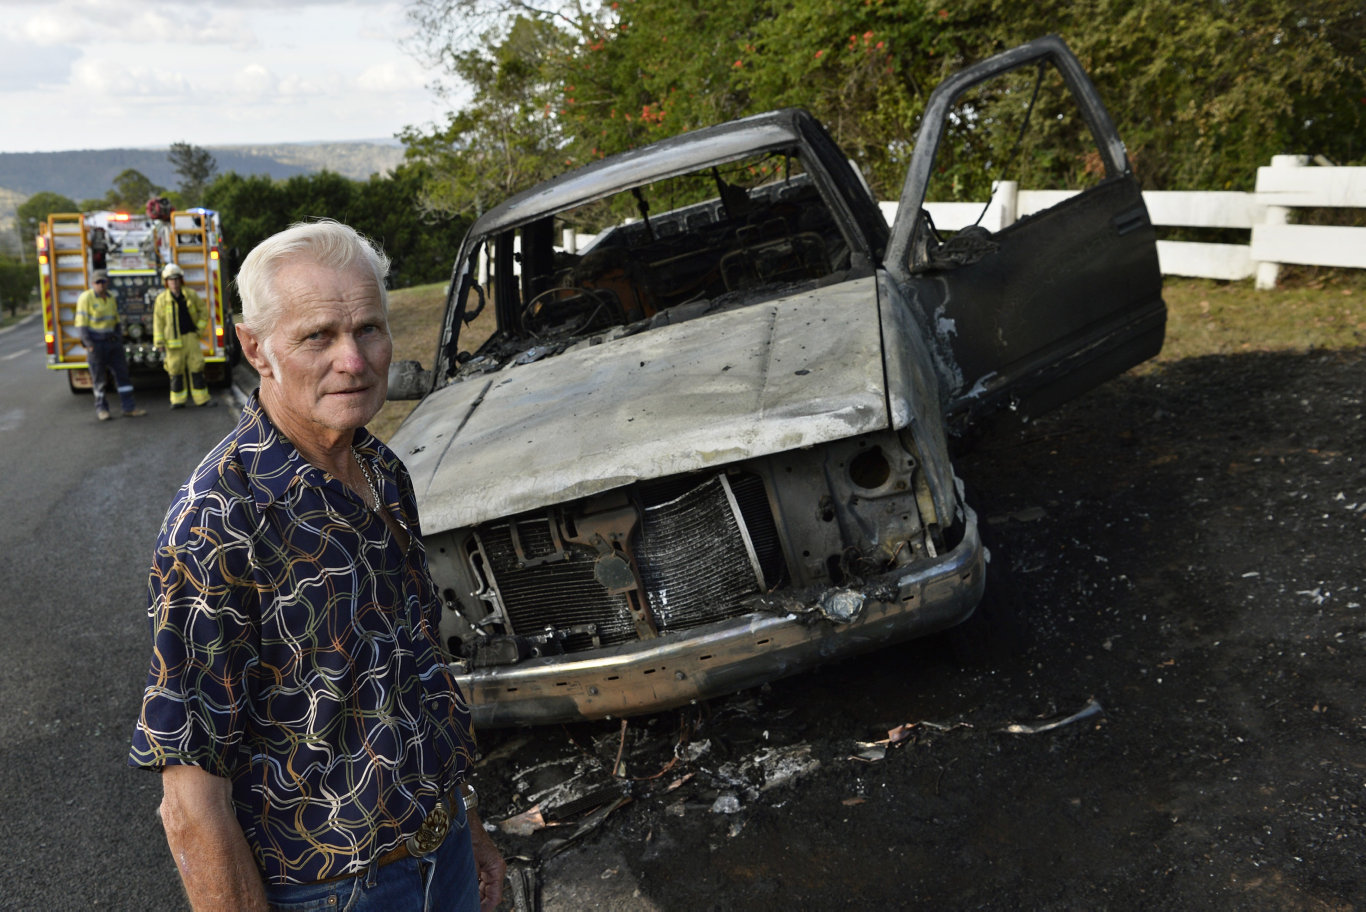 Owner Terry Hill inspects the ute after the fire.